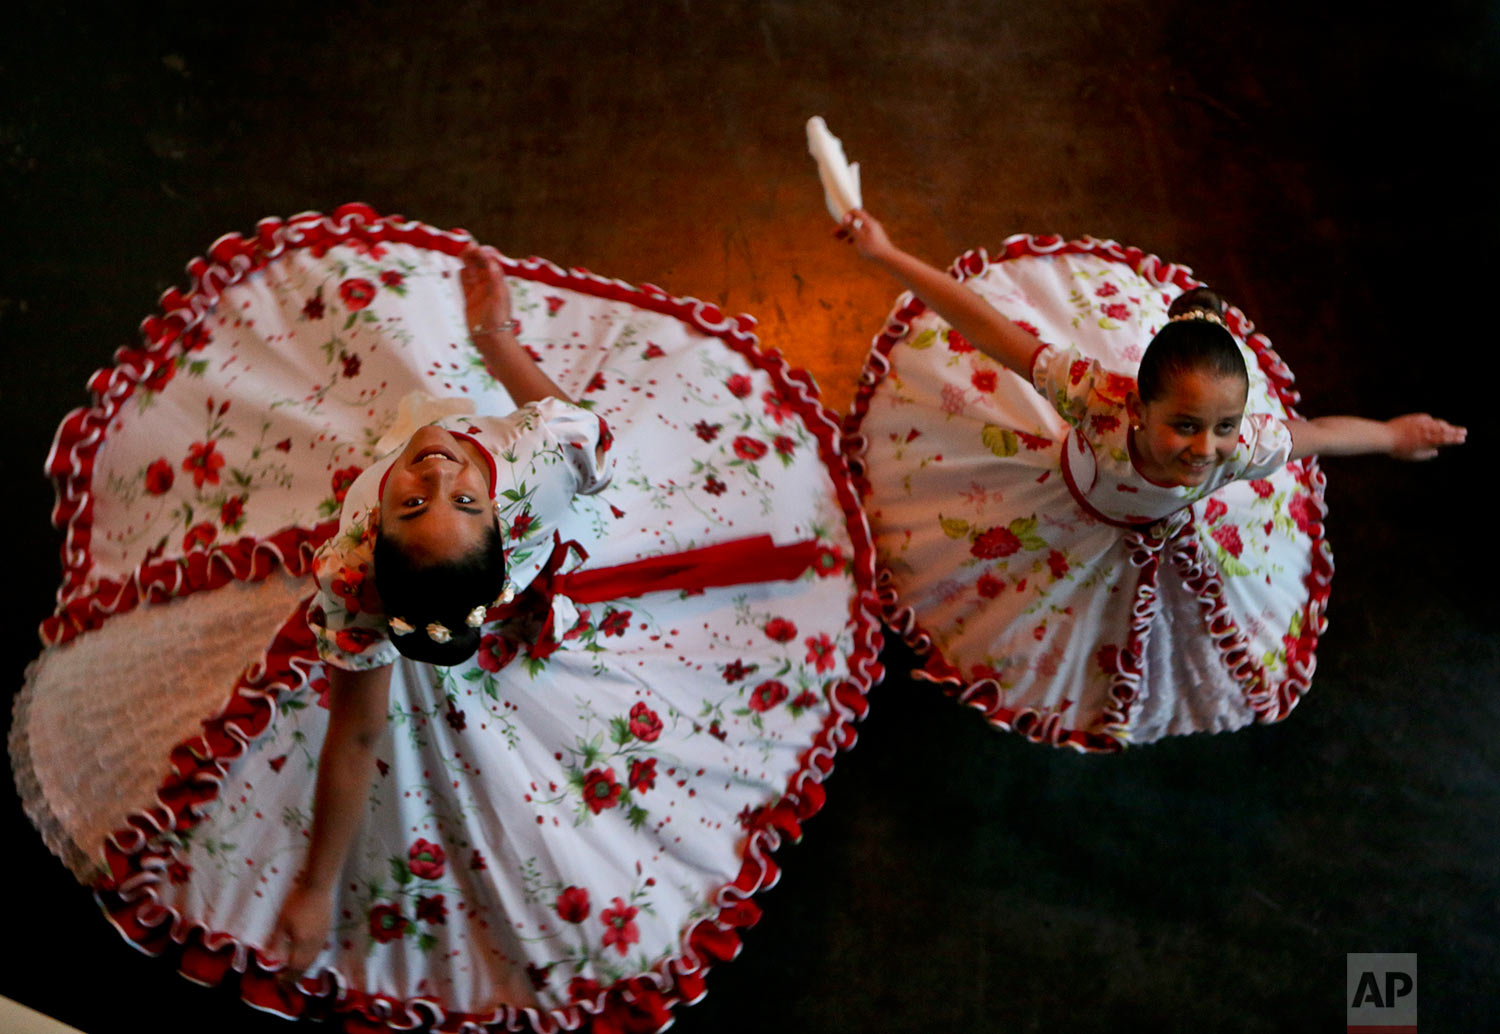 In this Aug. 19, 2017 photo, transgender girls Josefa, 13, left, and Selenna, 8, pose for a picture as they twirl in traditional Chilean dance costumes before an event marking Transgender Children Day in Santiago, Chile. The center-left government has been pushing an array of measures for gender rights, ranging from decriminalizing some abortions to demanding greater acceptance for transgender people in general and children in particular. (AP Photo/Esteban Felix)